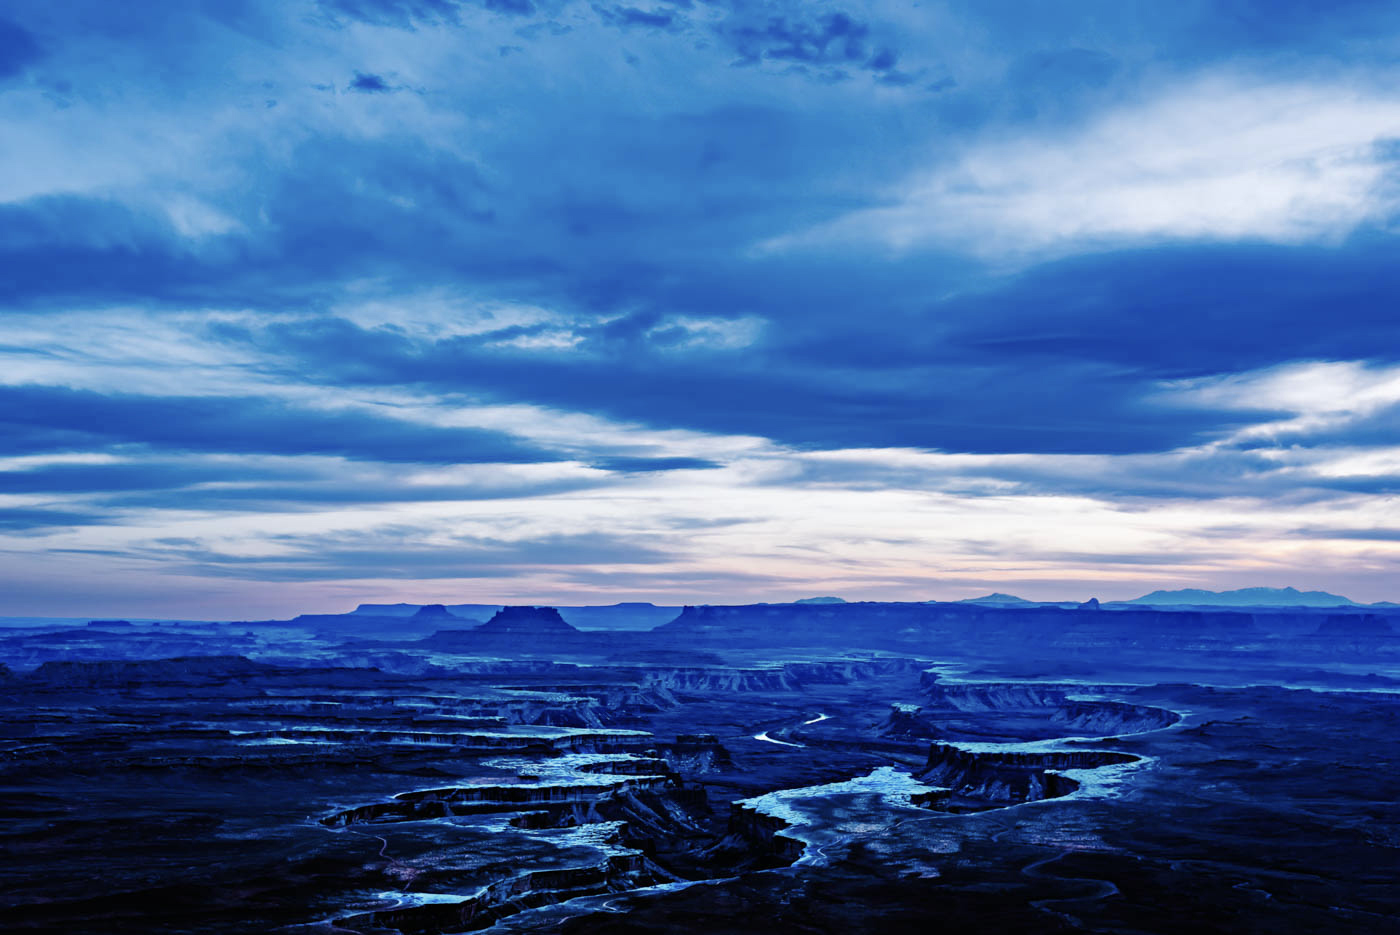 Canyonlands-Dusk-1-of-1Canyonlands-dusk_DSC3865-Edit-Edit